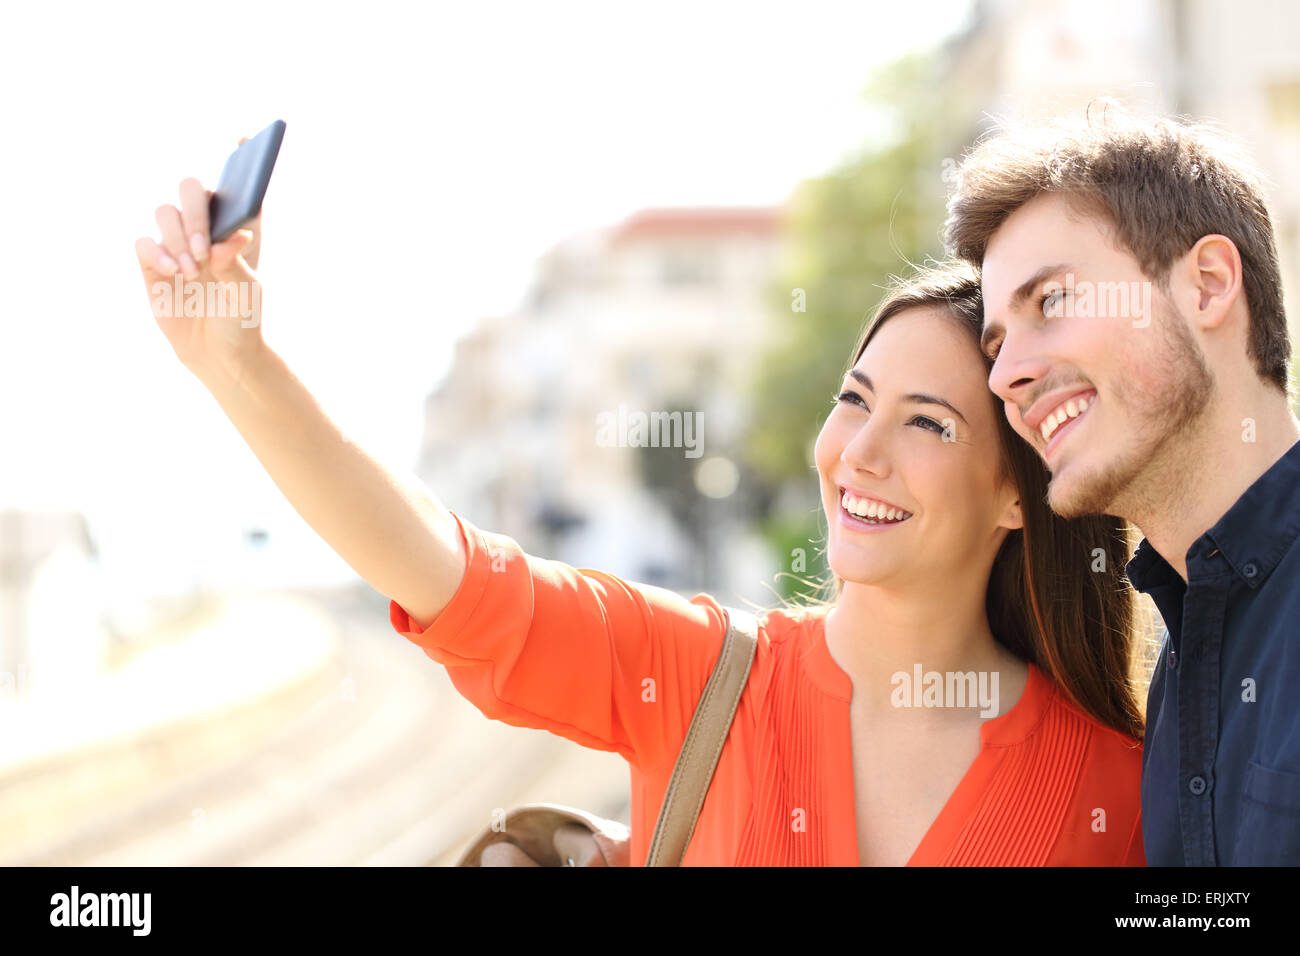 Traveler tourists couple photographing a selfie in a train station Stock Photo